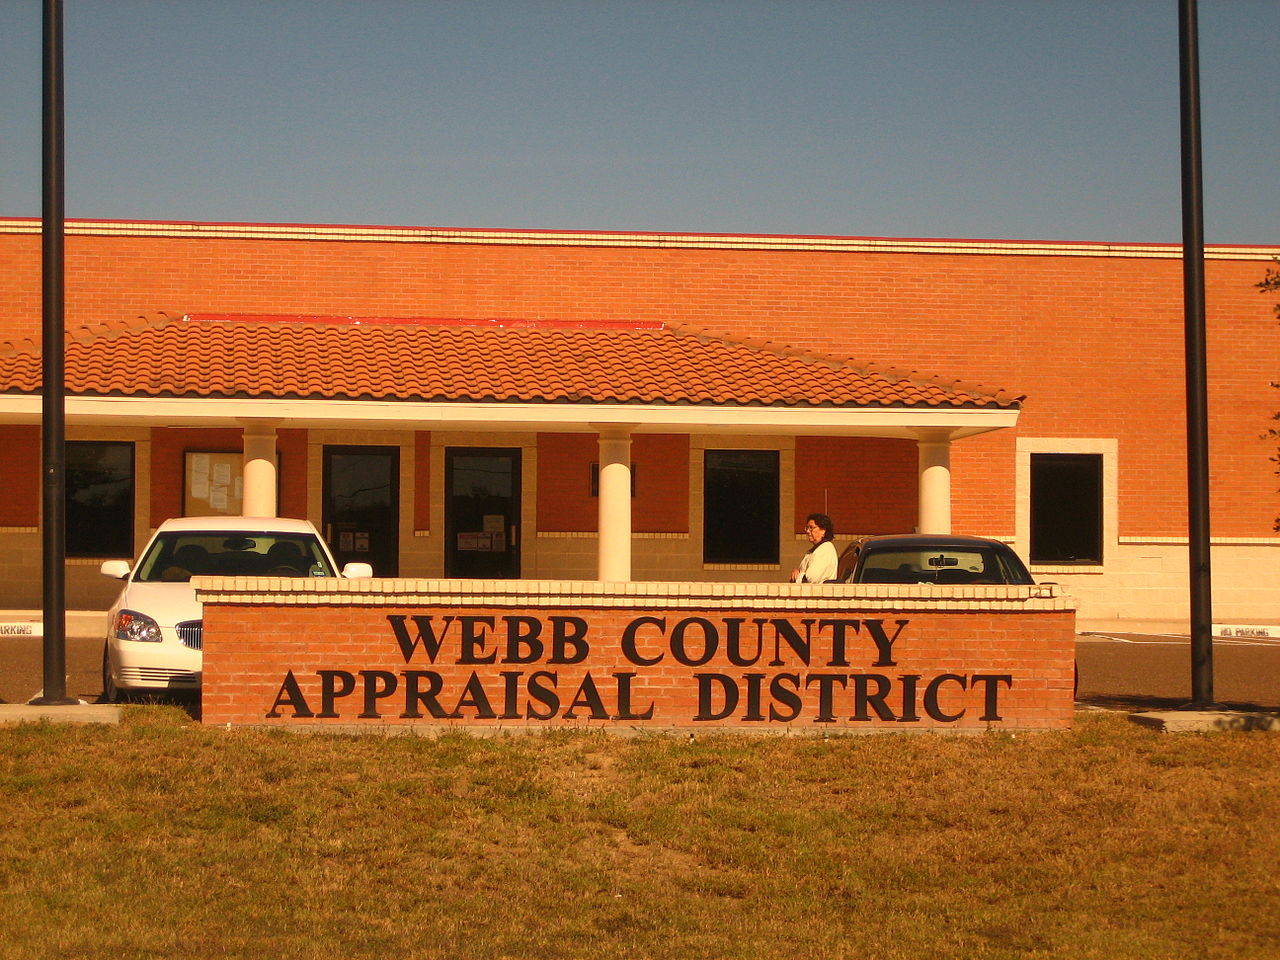 webb county dating Find vital records from webb county, texas find webb county, texas birth, death, marriage and divorce records and contact your local vital record office to obtain a copy of the record you desire.